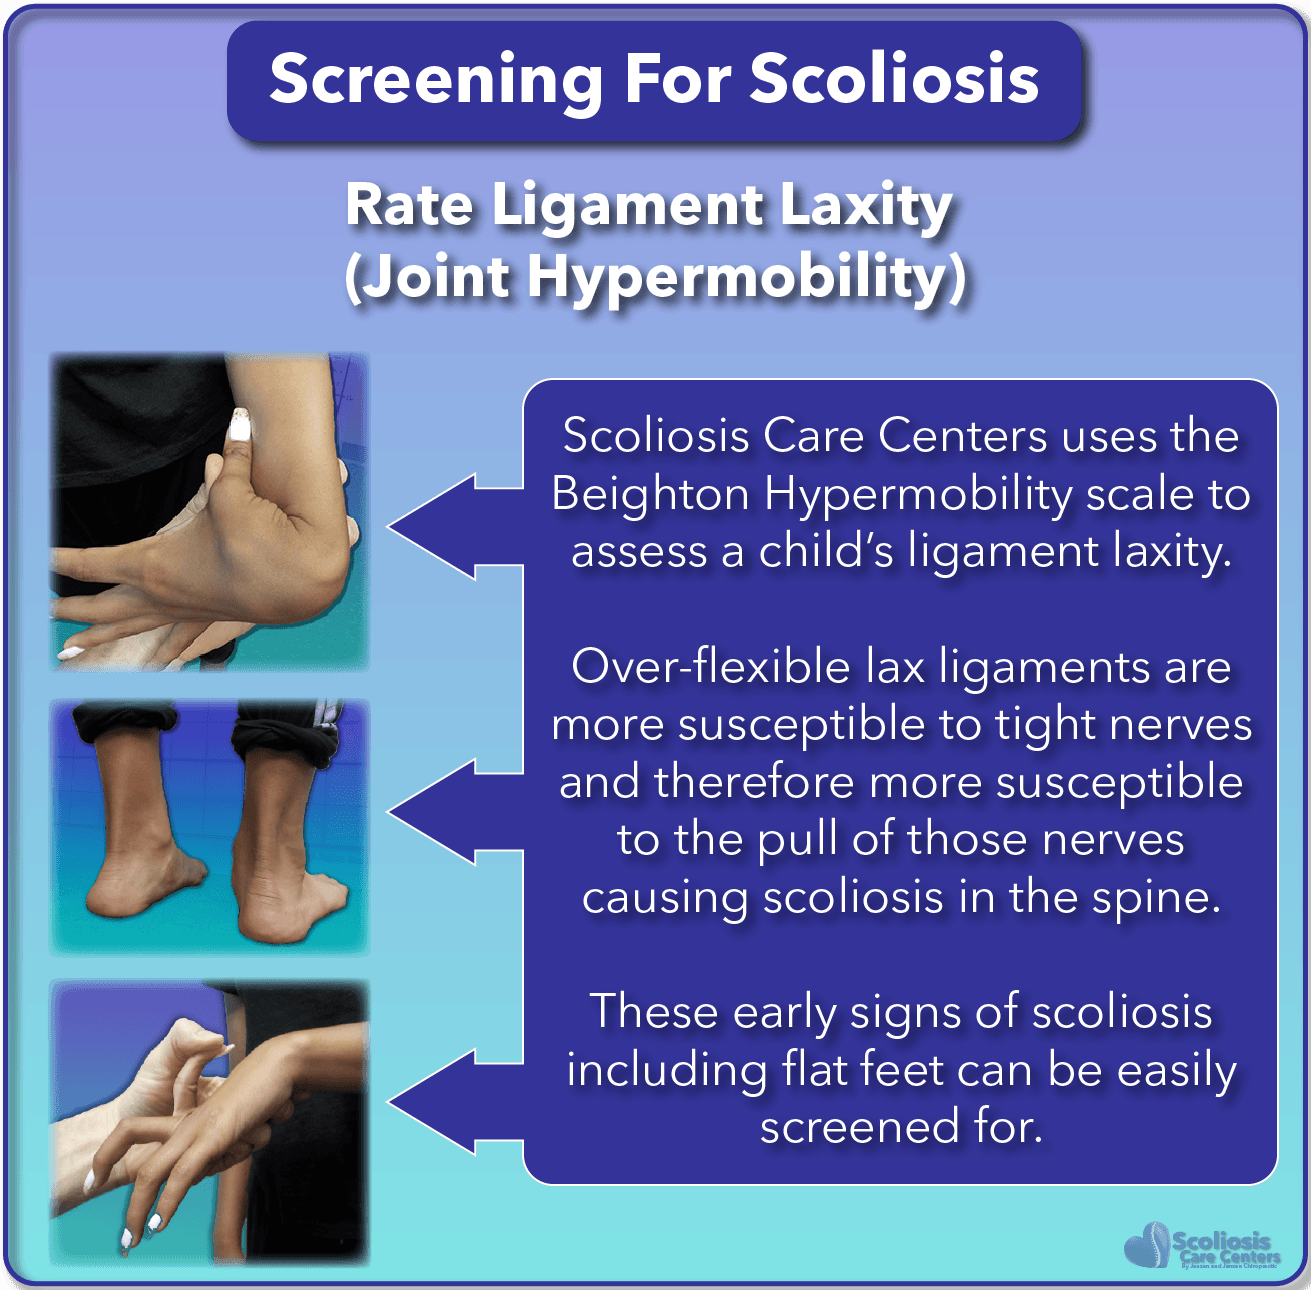 SureScreen looks for early warning signs of scoliosis during screening